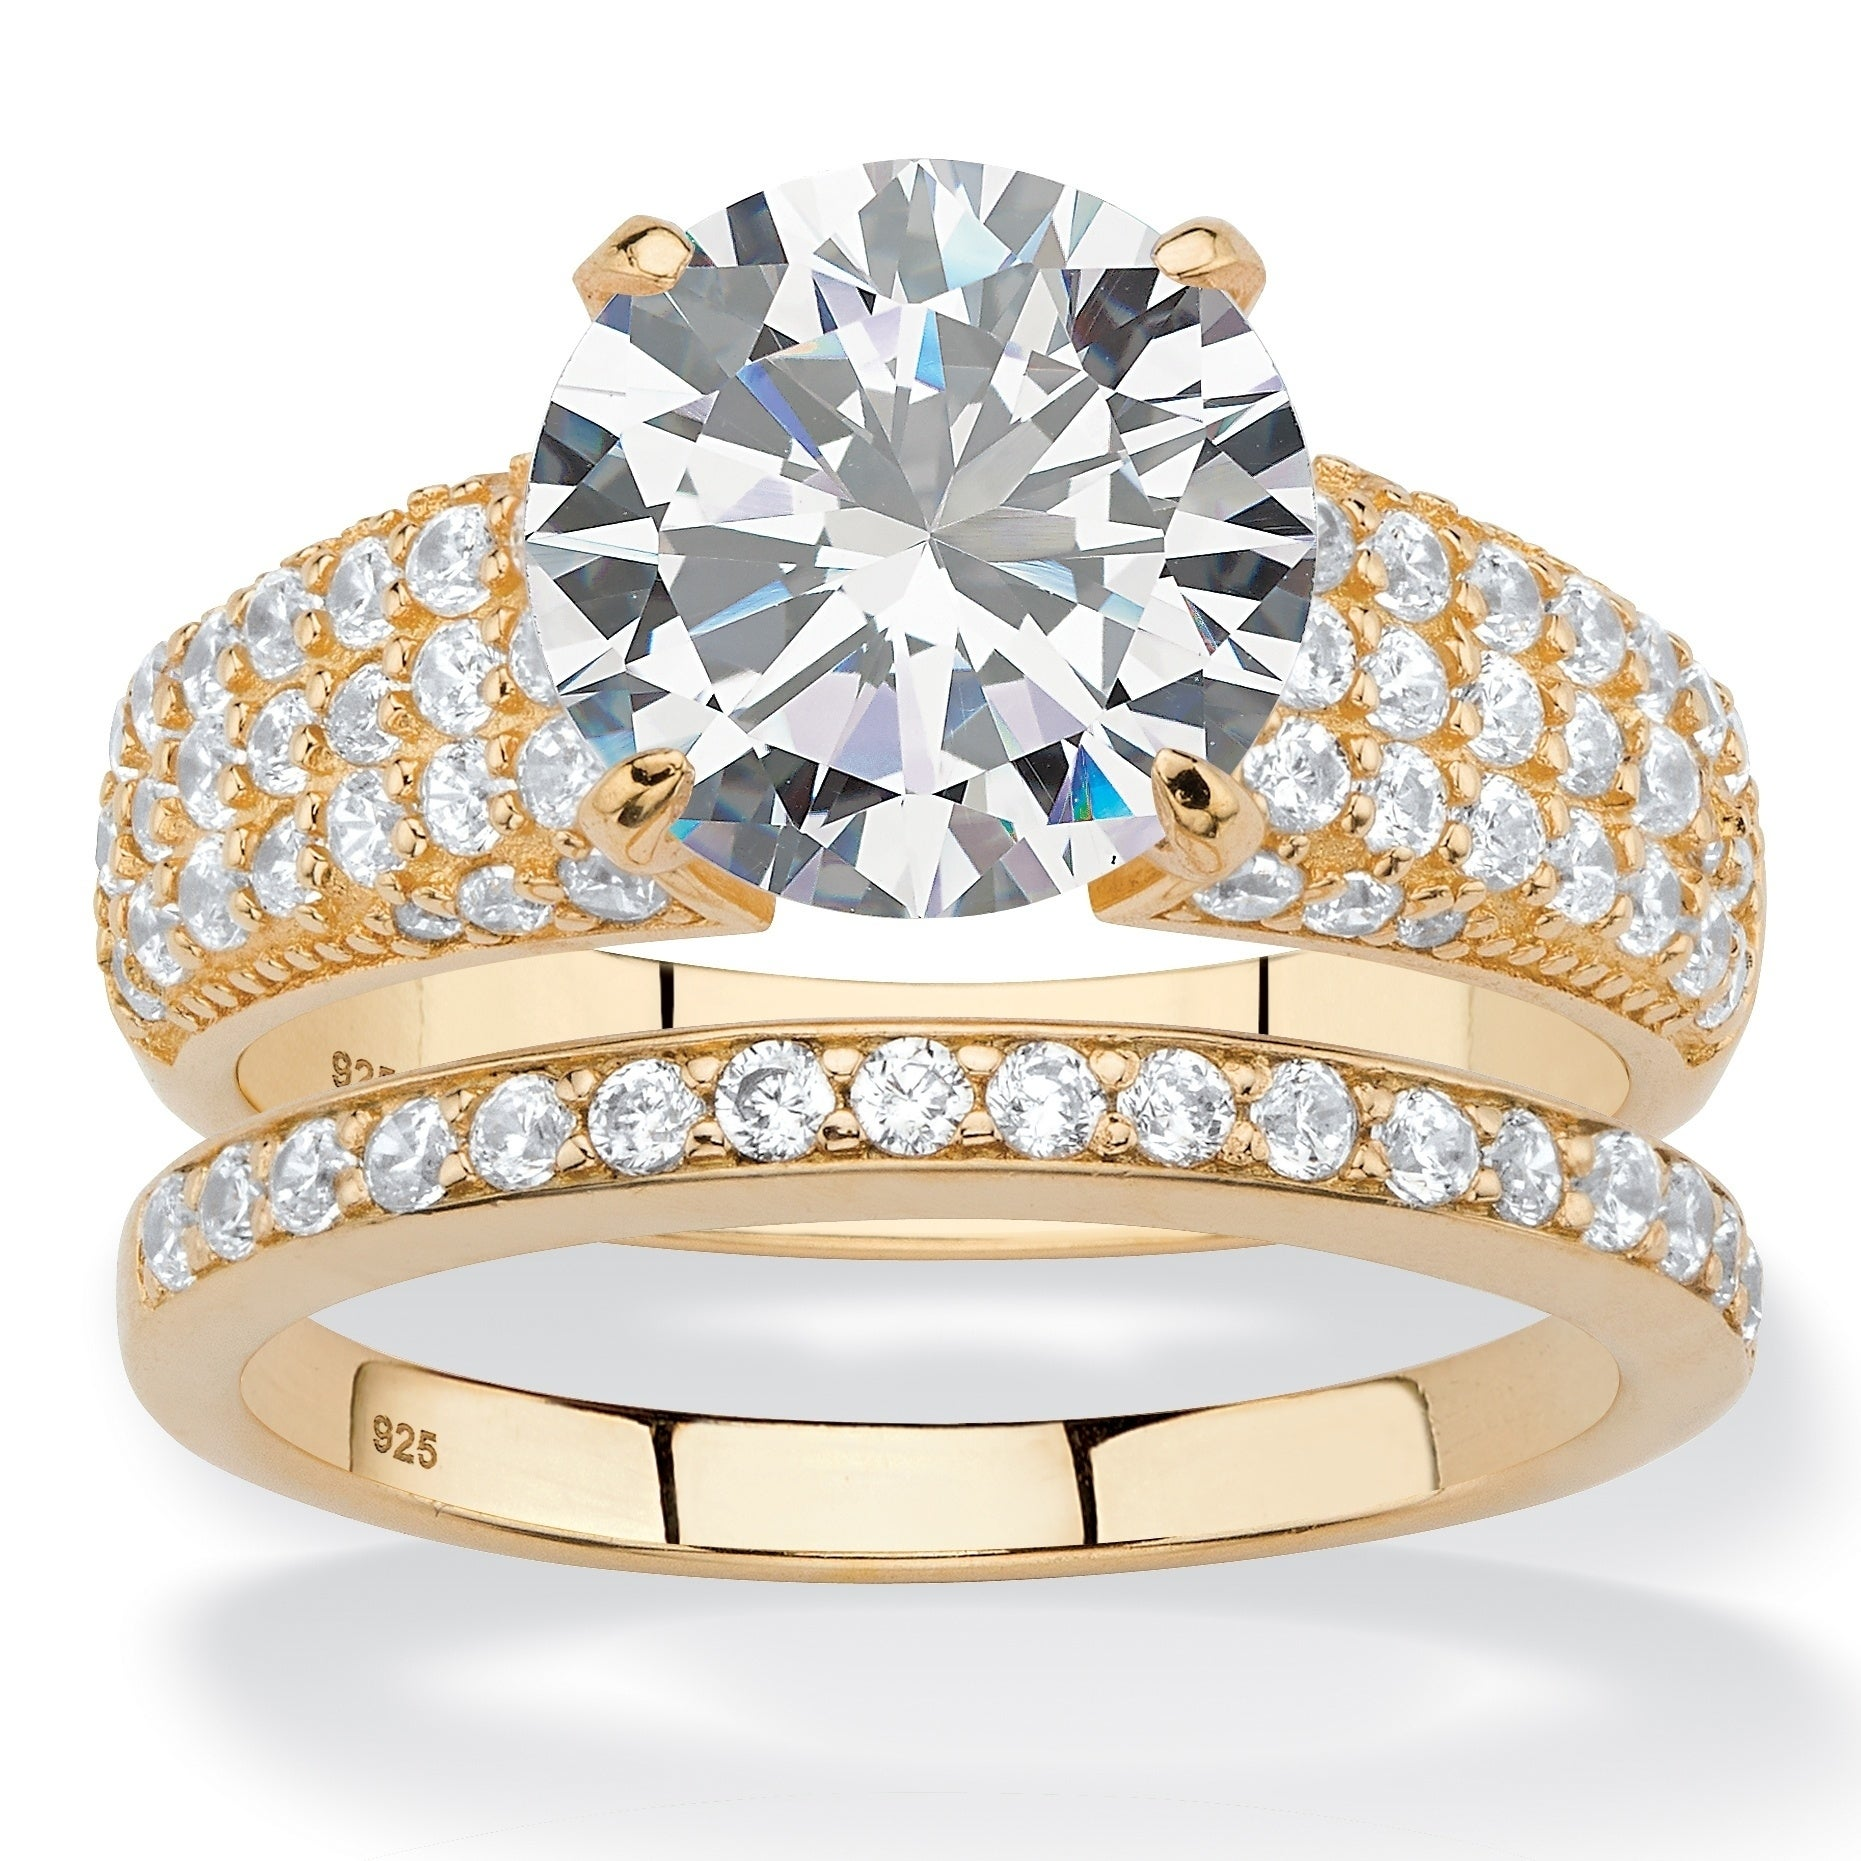 Palm Beach 14k Yellow Gold 5.55tcw Round and Pave White C...